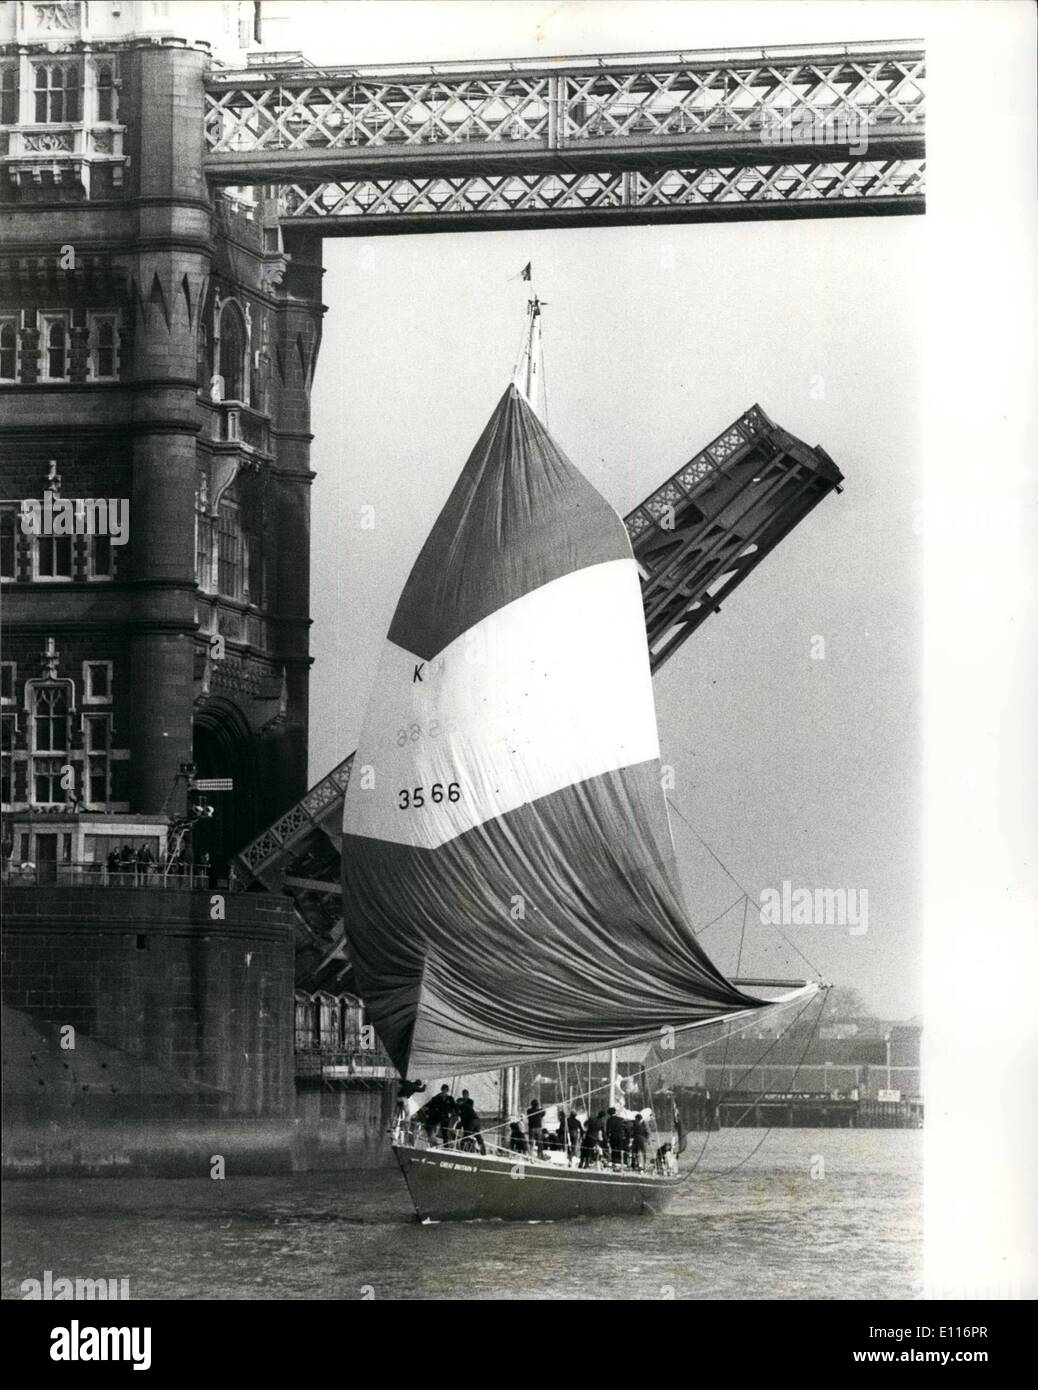 Mar. 03, 1976 - Ted Heath sails great Britian 11 up the Thames from Greenwich to Tower Pier.: Edward Heath MP, former leader of - Stock Image